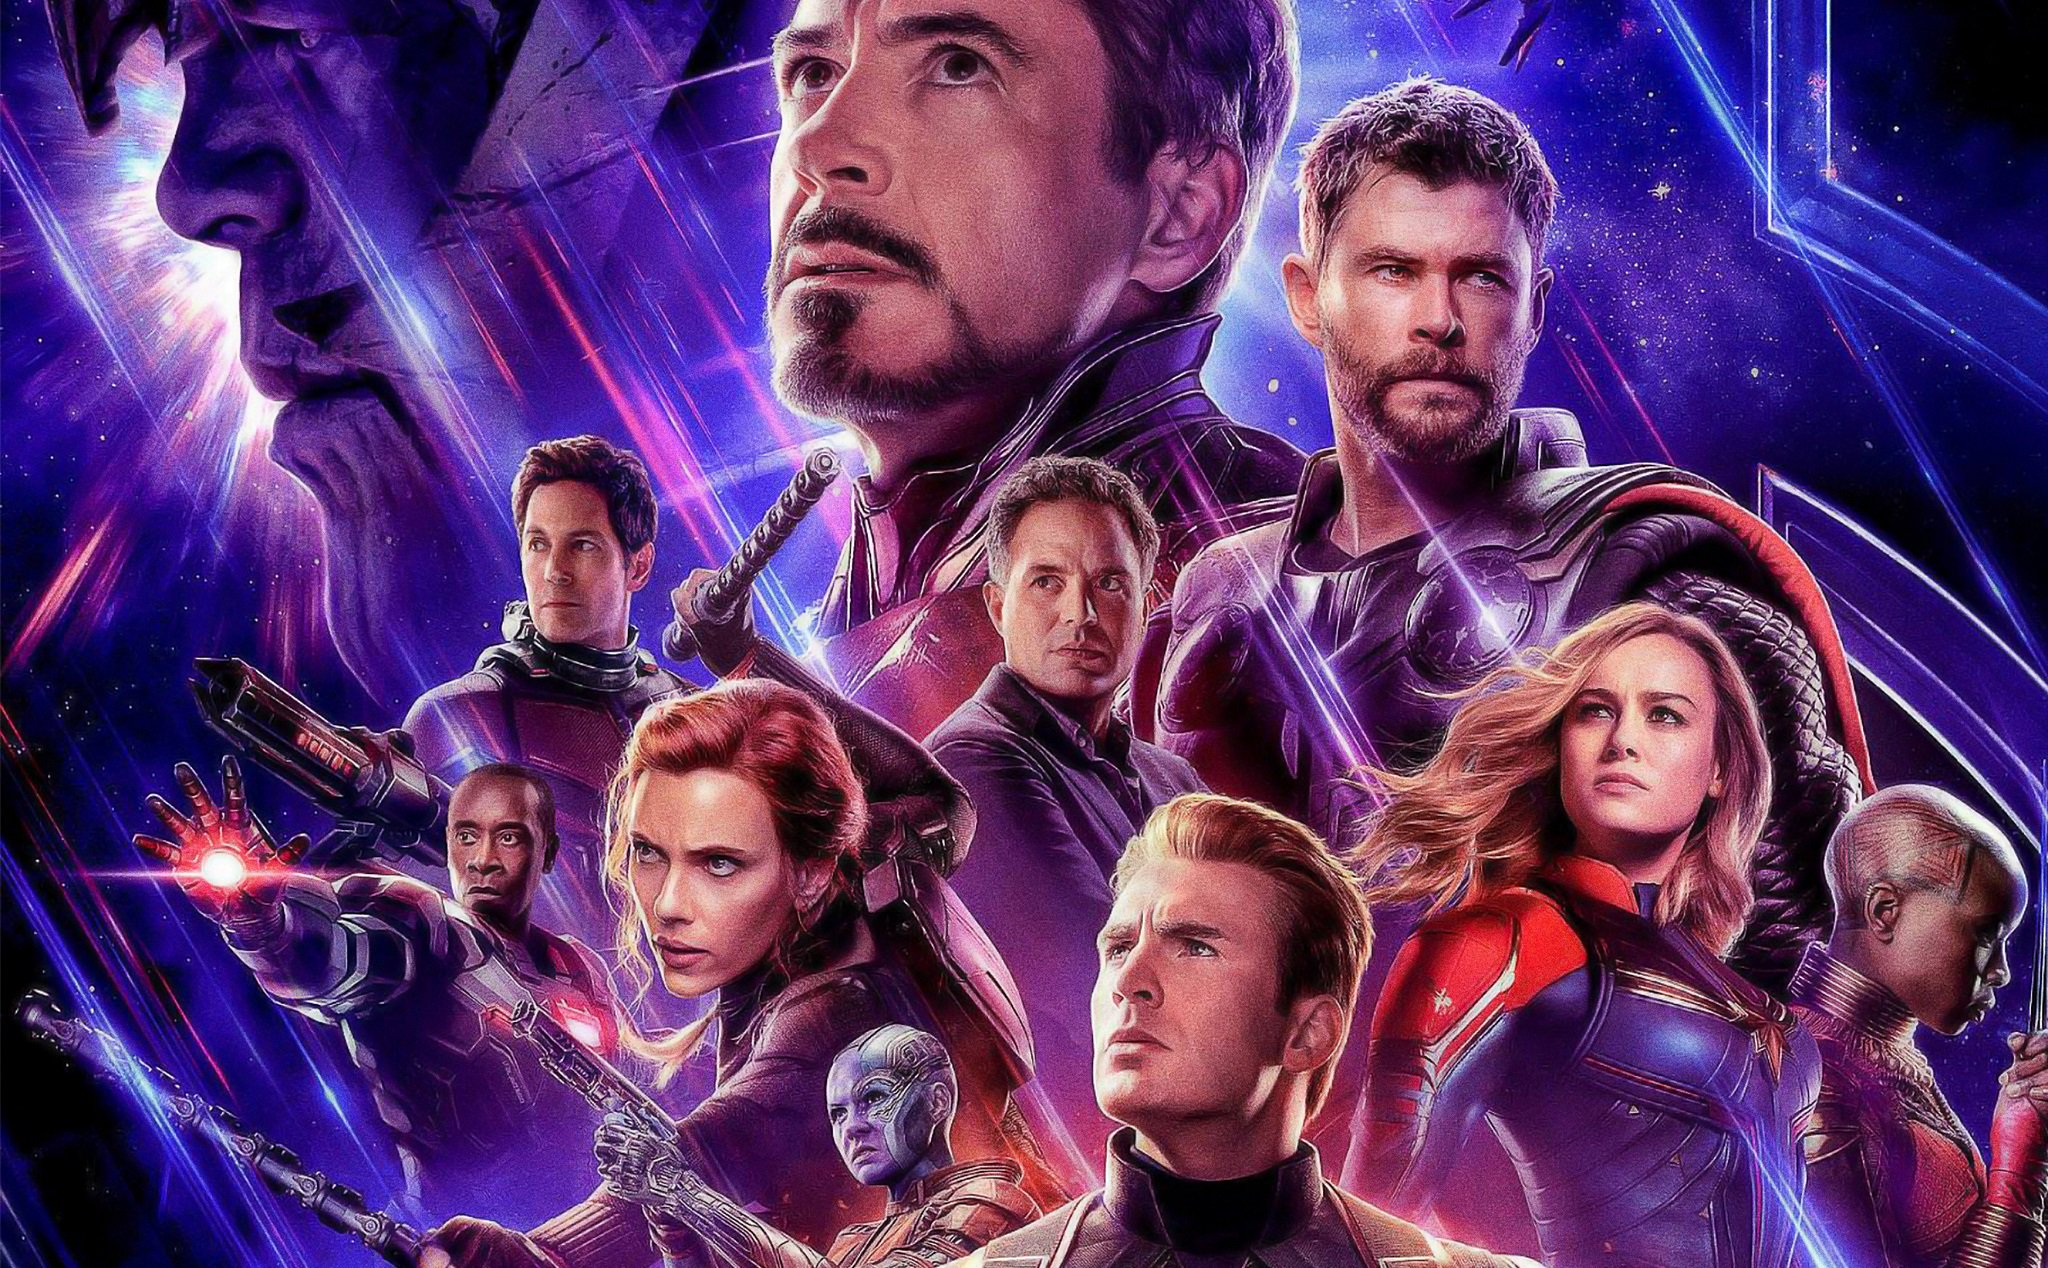 Next week Marvel will play back Avengers: New version of Endgame, more segments are cut